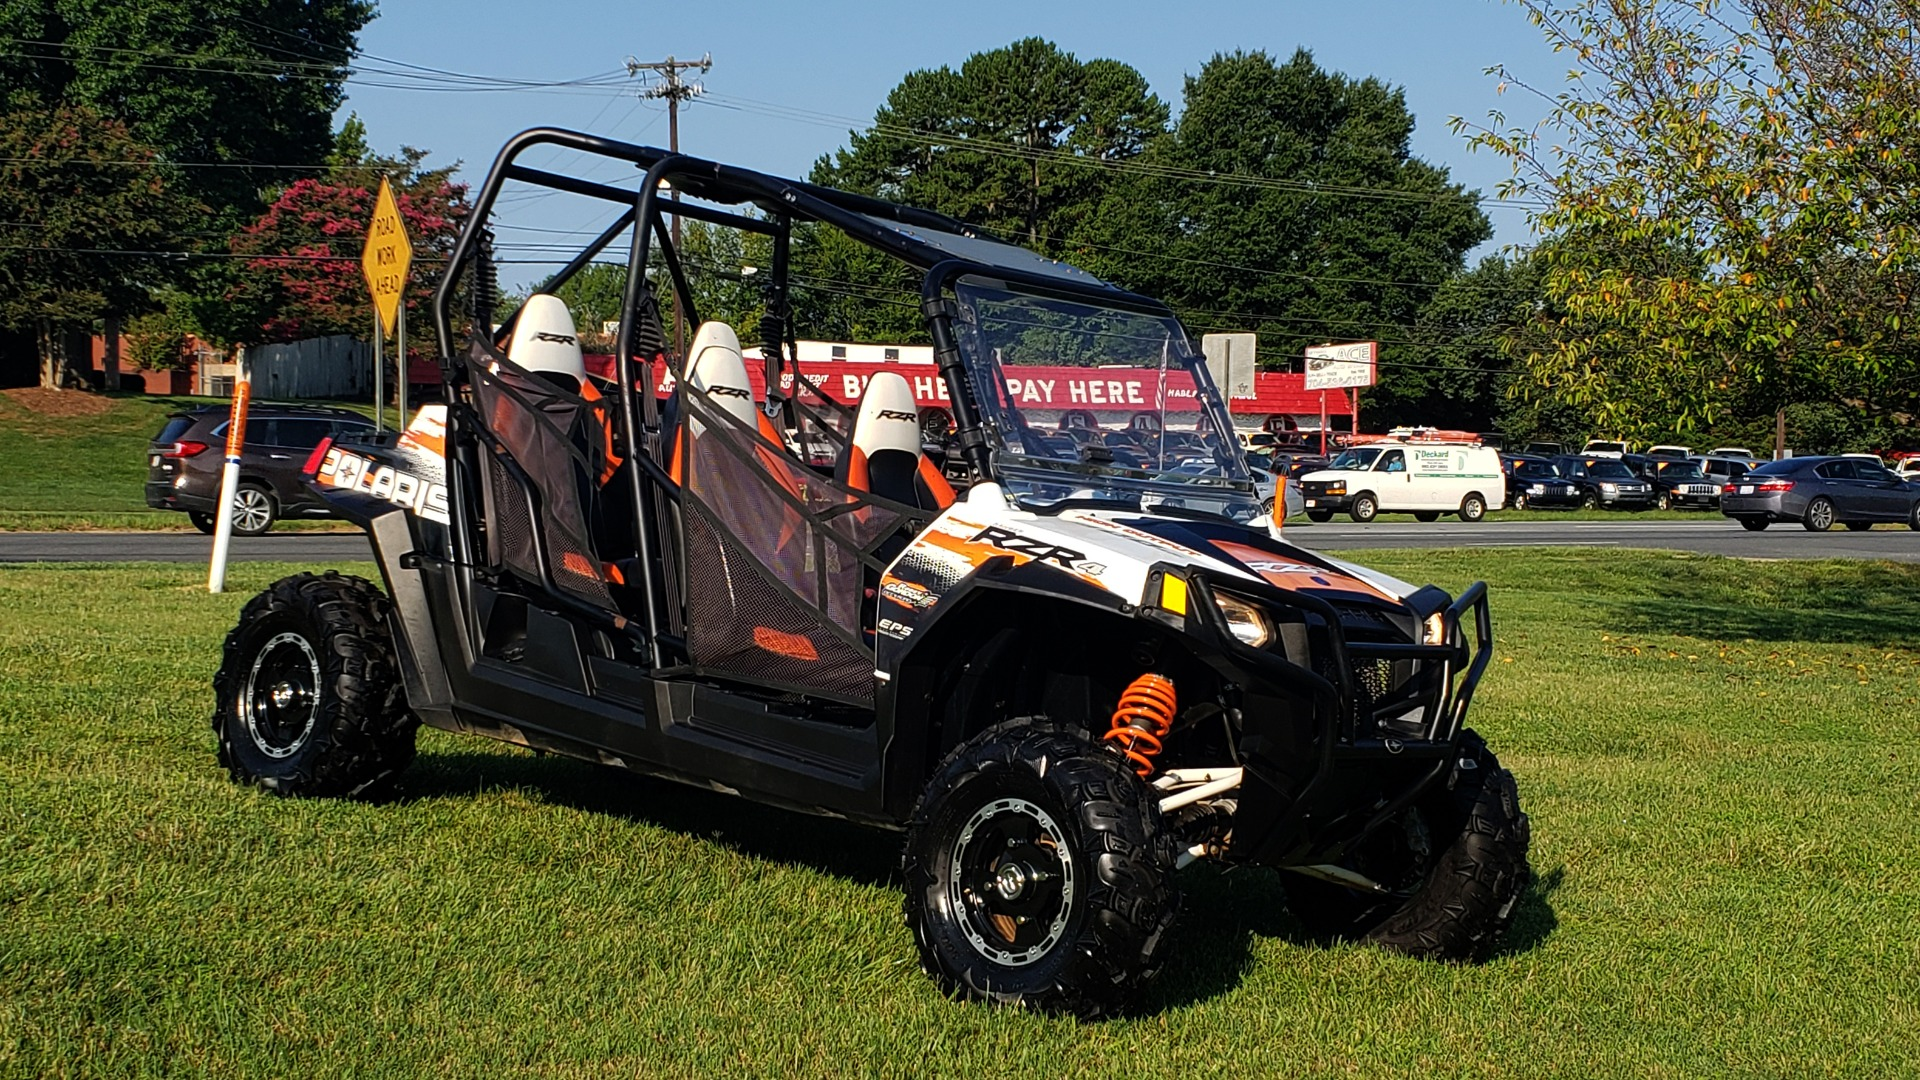 Used 2012 POLARIS RANGER RZR4 / HO 800 EFI / IPHONE CONNECT / SPEAKERS / NEW TIRES for sale Sold at Formula Imports in Charlotte NC 28227 8